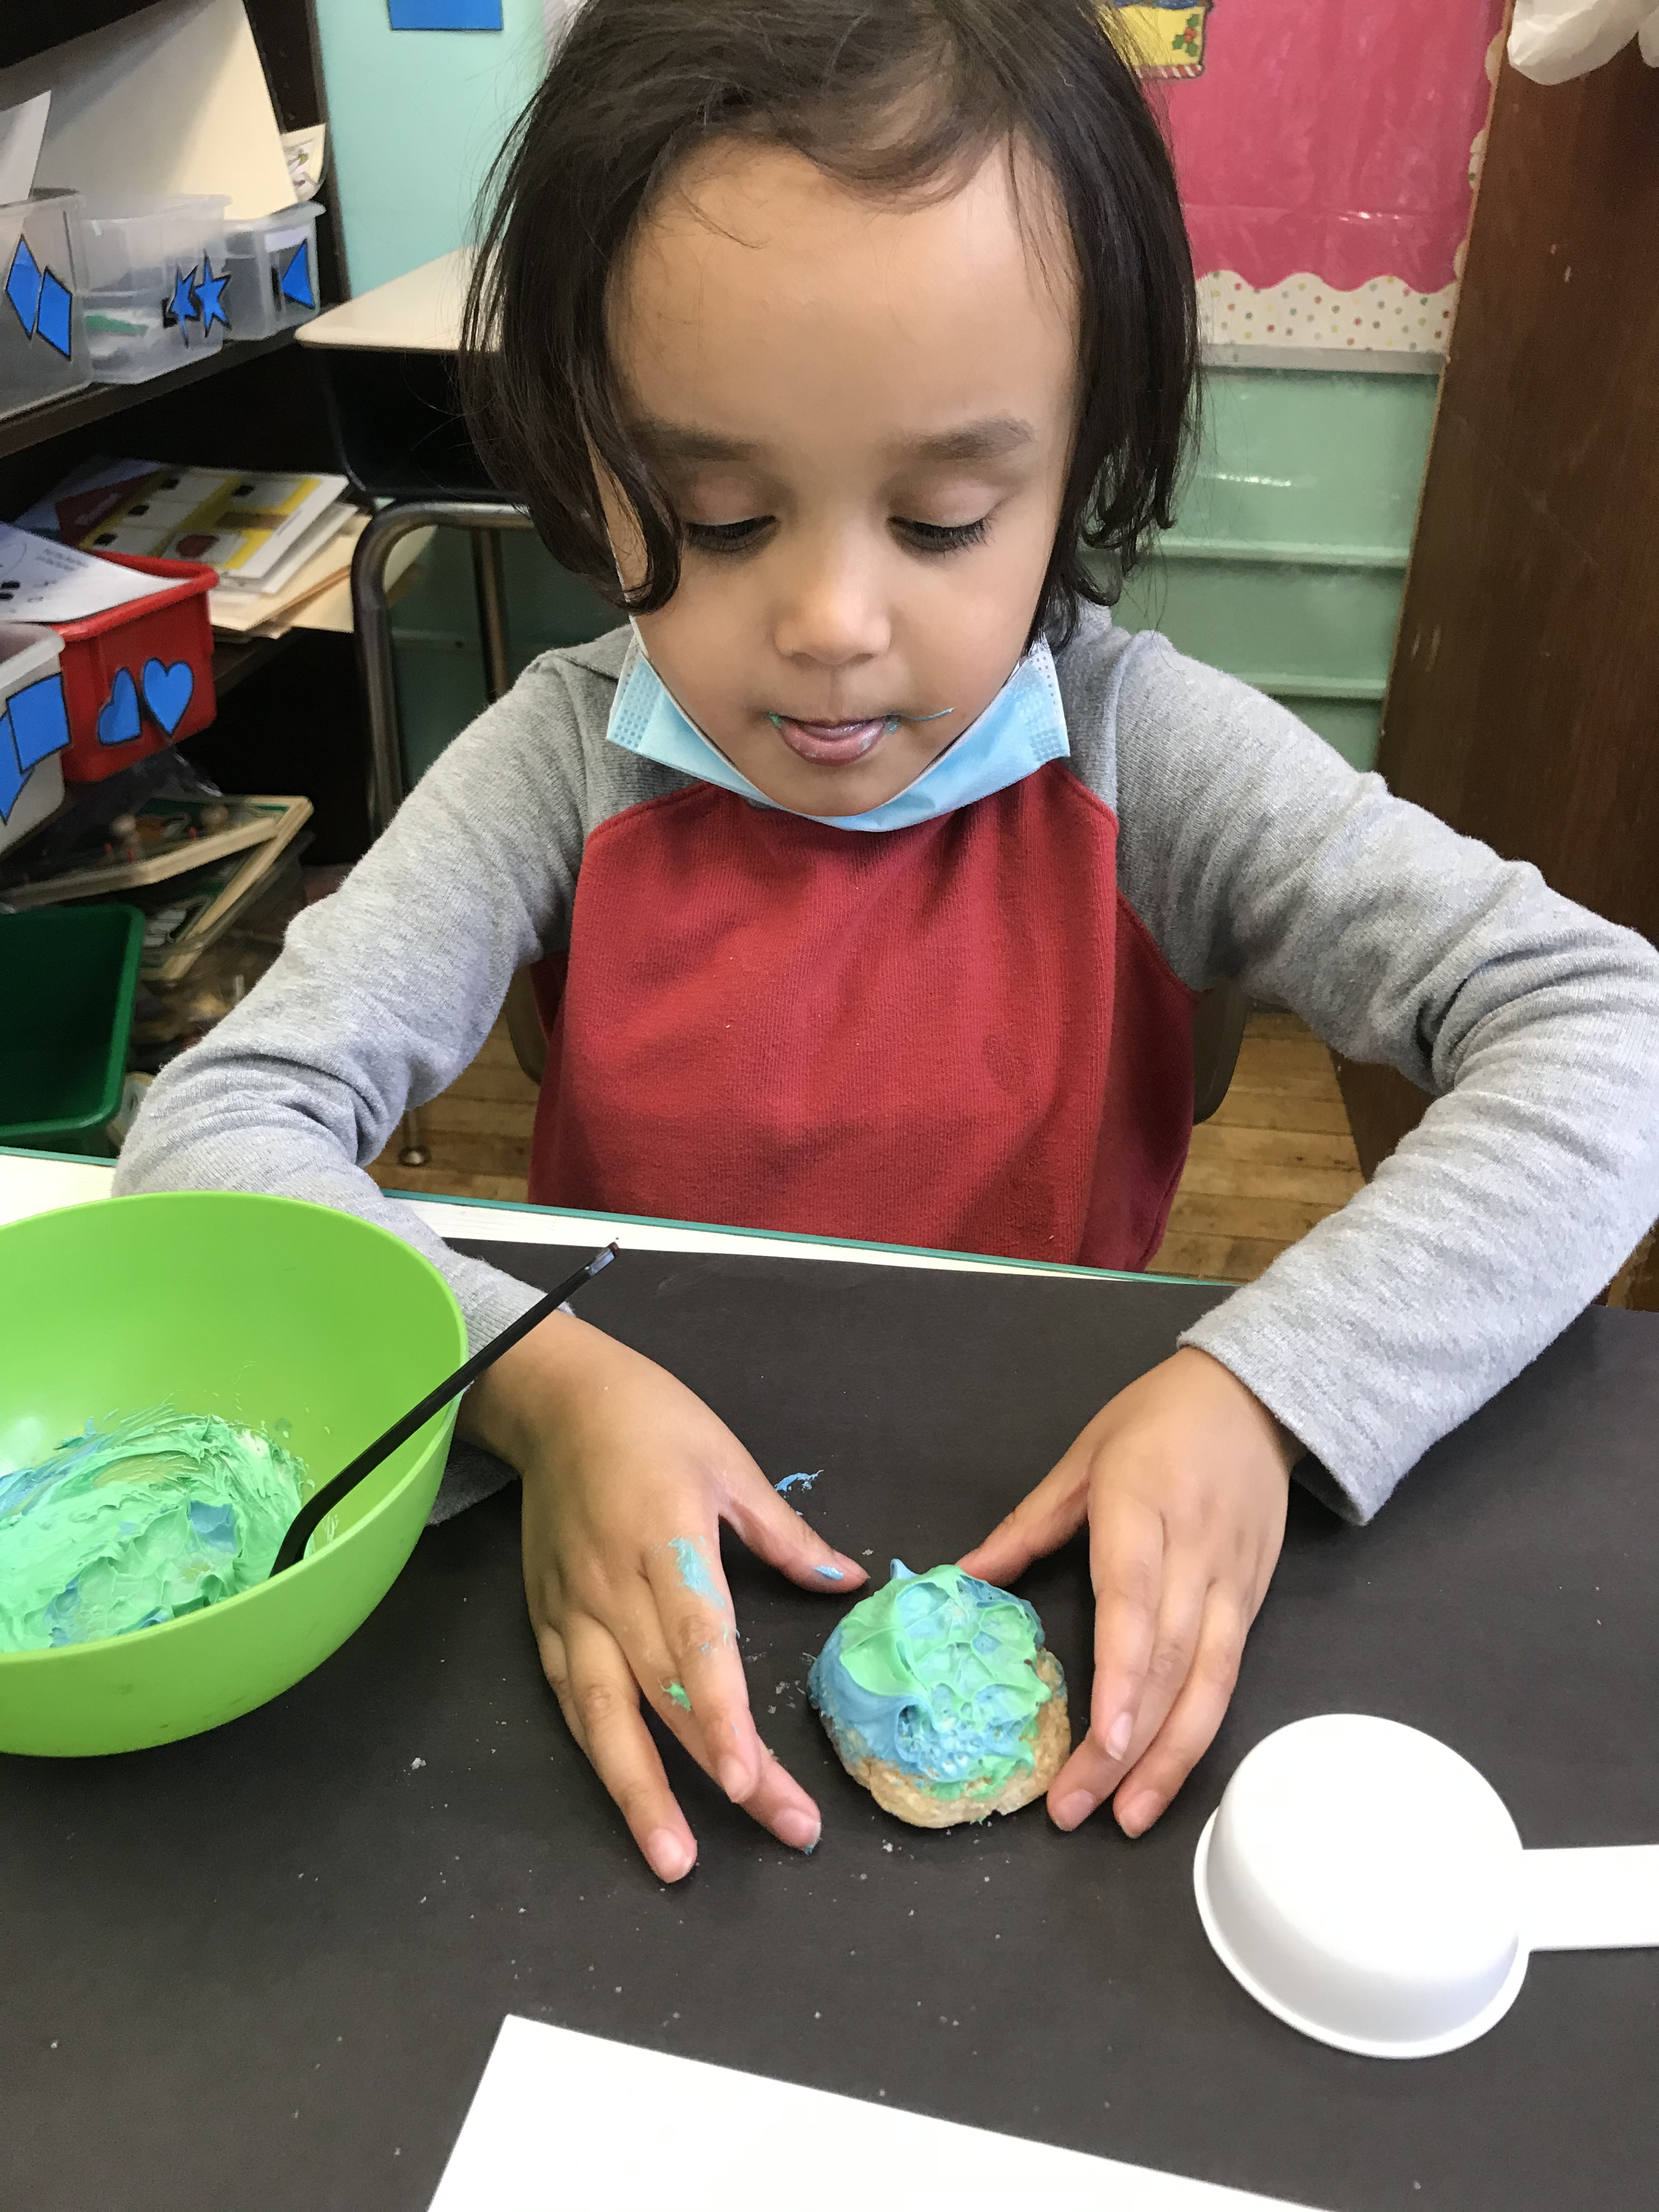 Putting green and blue frosting on an earth day cookie